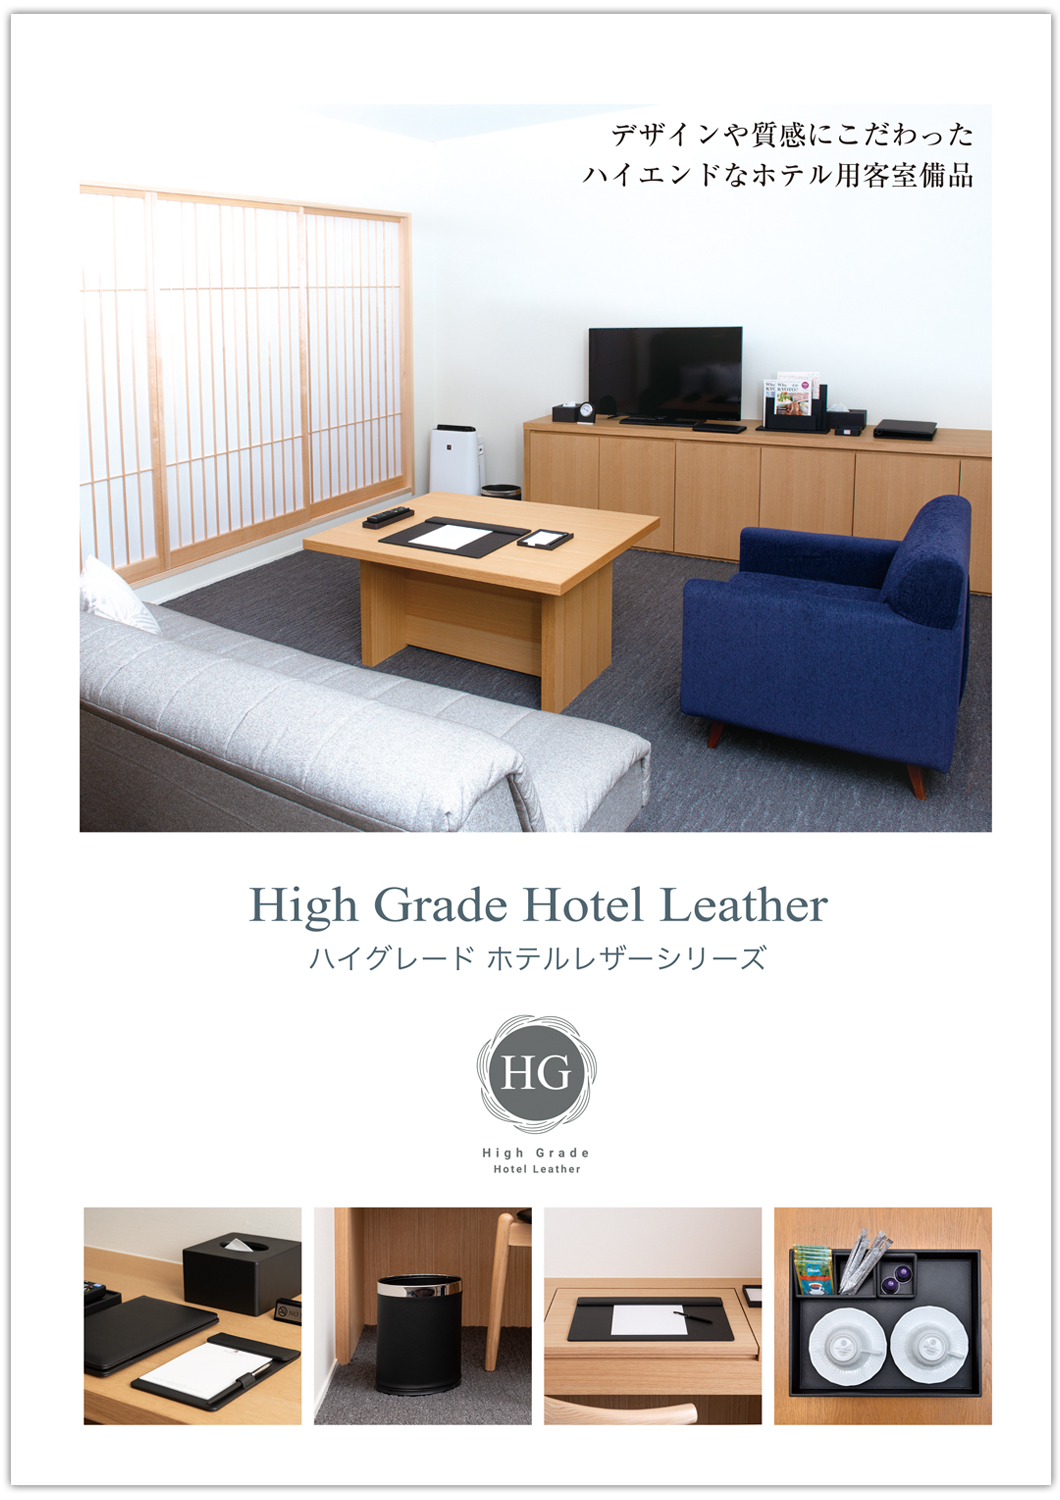 High Grade Hotel Leather